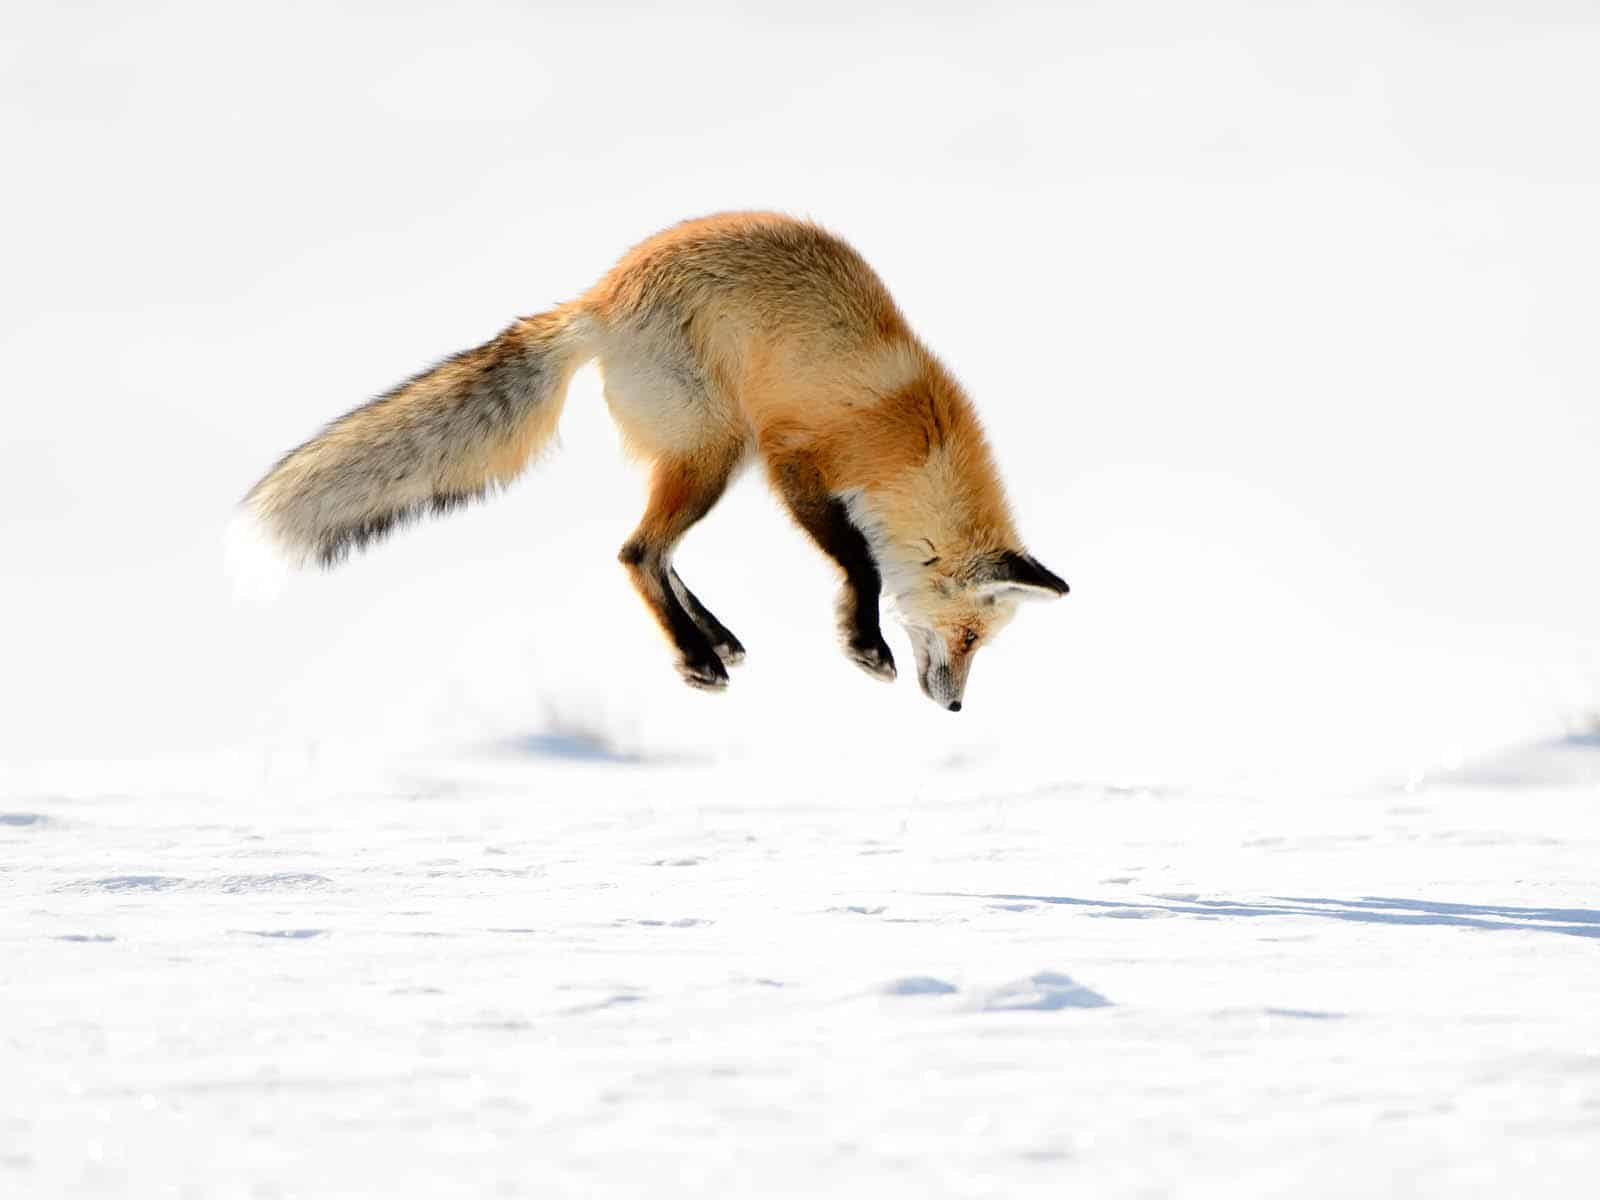 10 Fox a-leaping